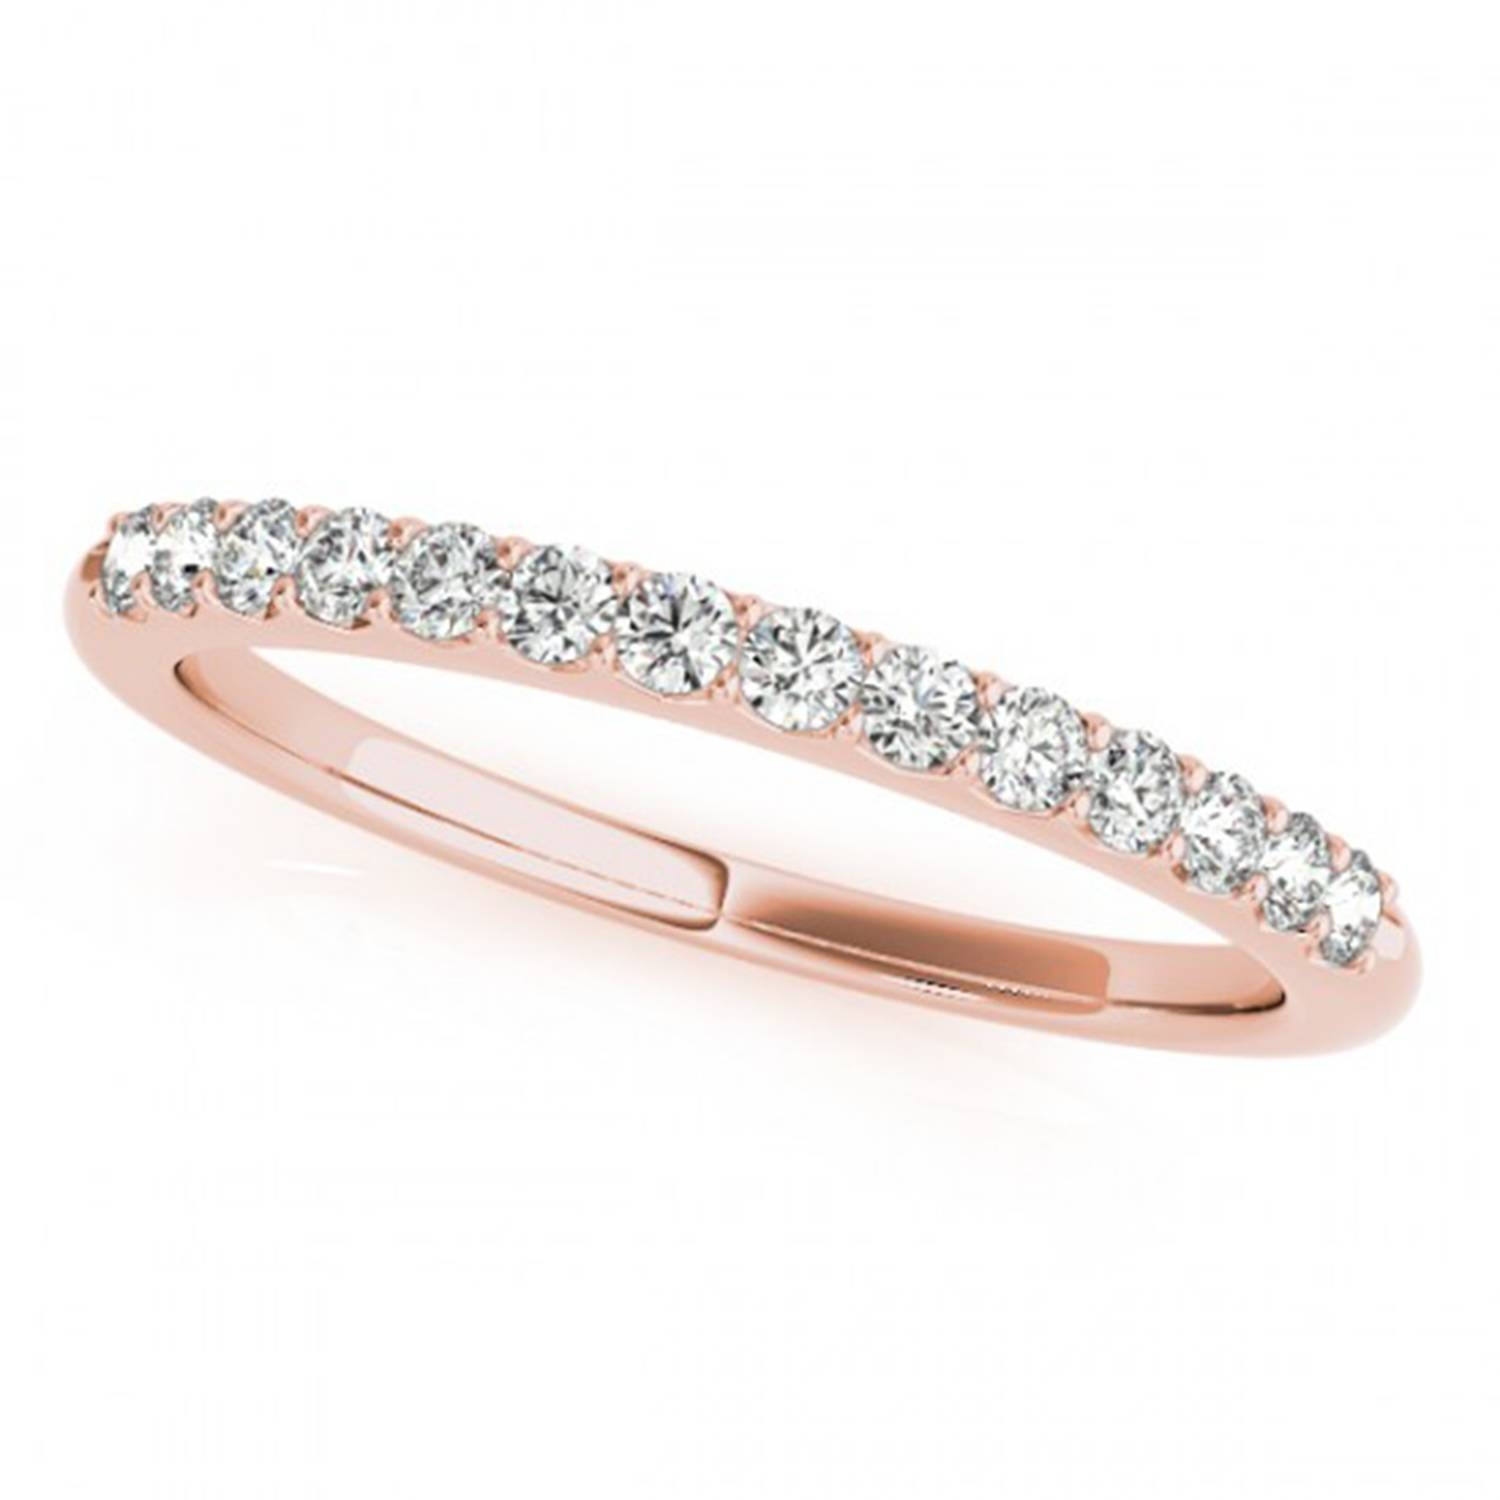 14K Rose Gold Petite Pave Diamond Wedding Band Throughout Most Recently Released Pave Diamond Wedding Bands (View 3 of 15)